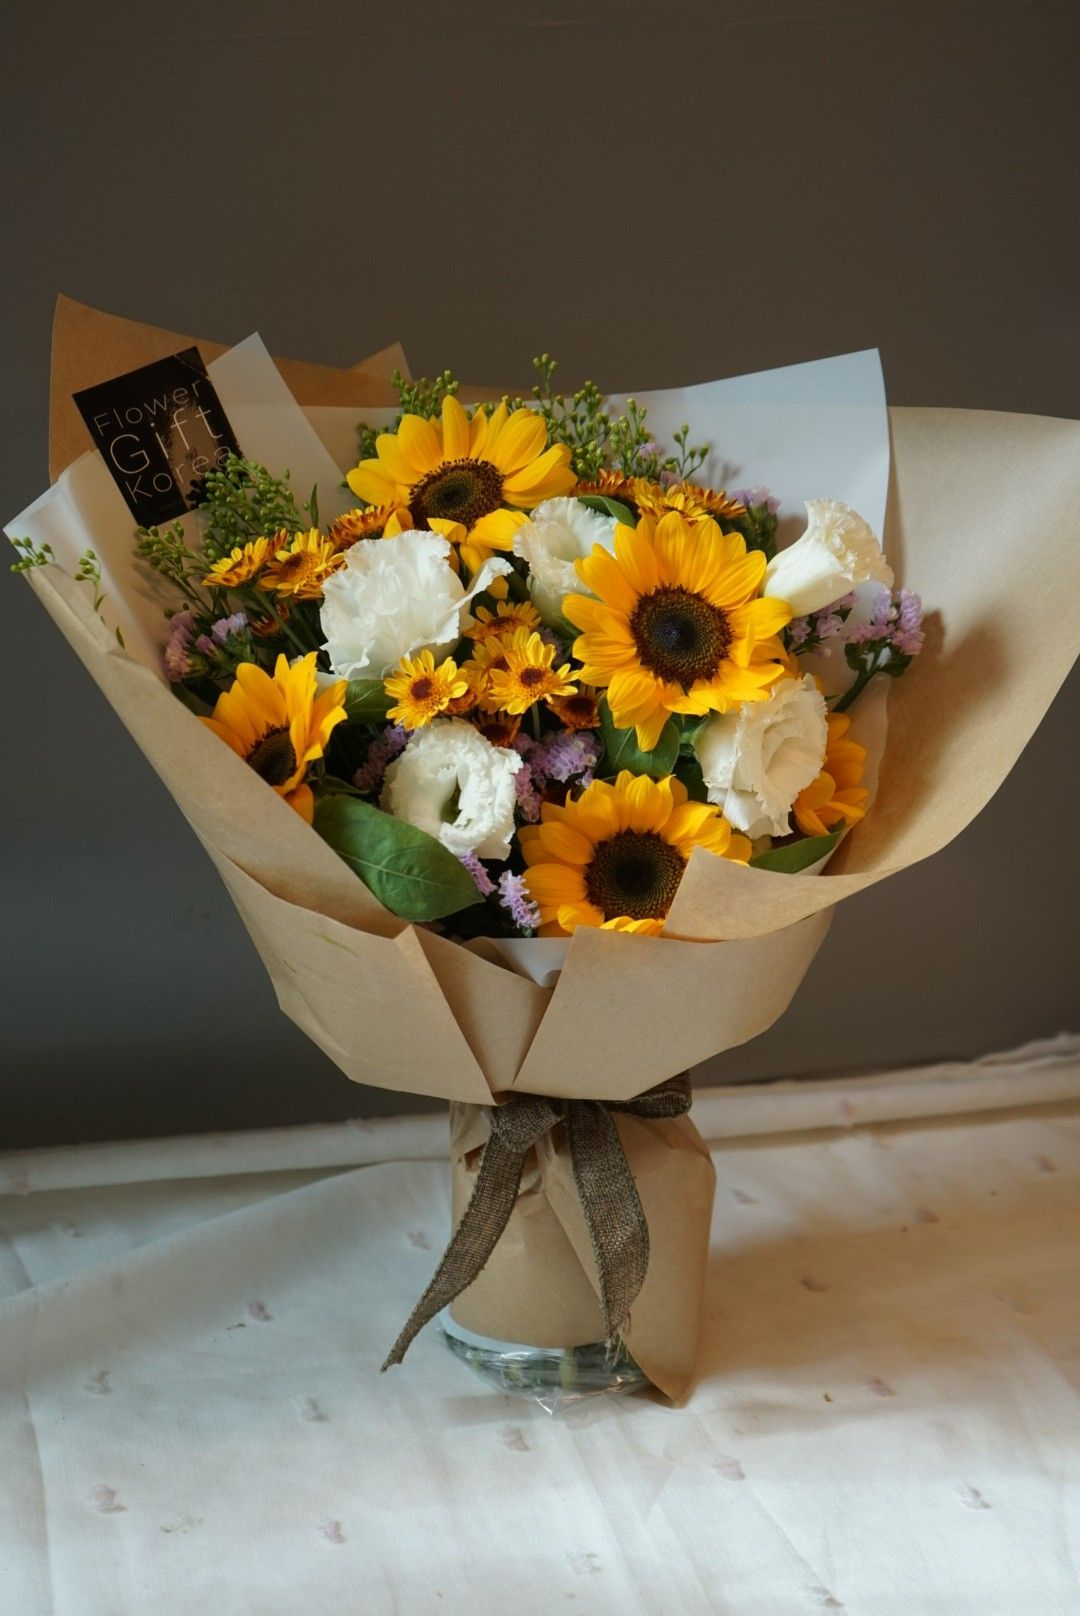 Sunflower Bouquet Hello Sunday Everyone Sunflowers Are Still Blooming And Has Still In Season In Korea S In 2020 Sunflower Bouquets Happy Flowers Flowers Delivered